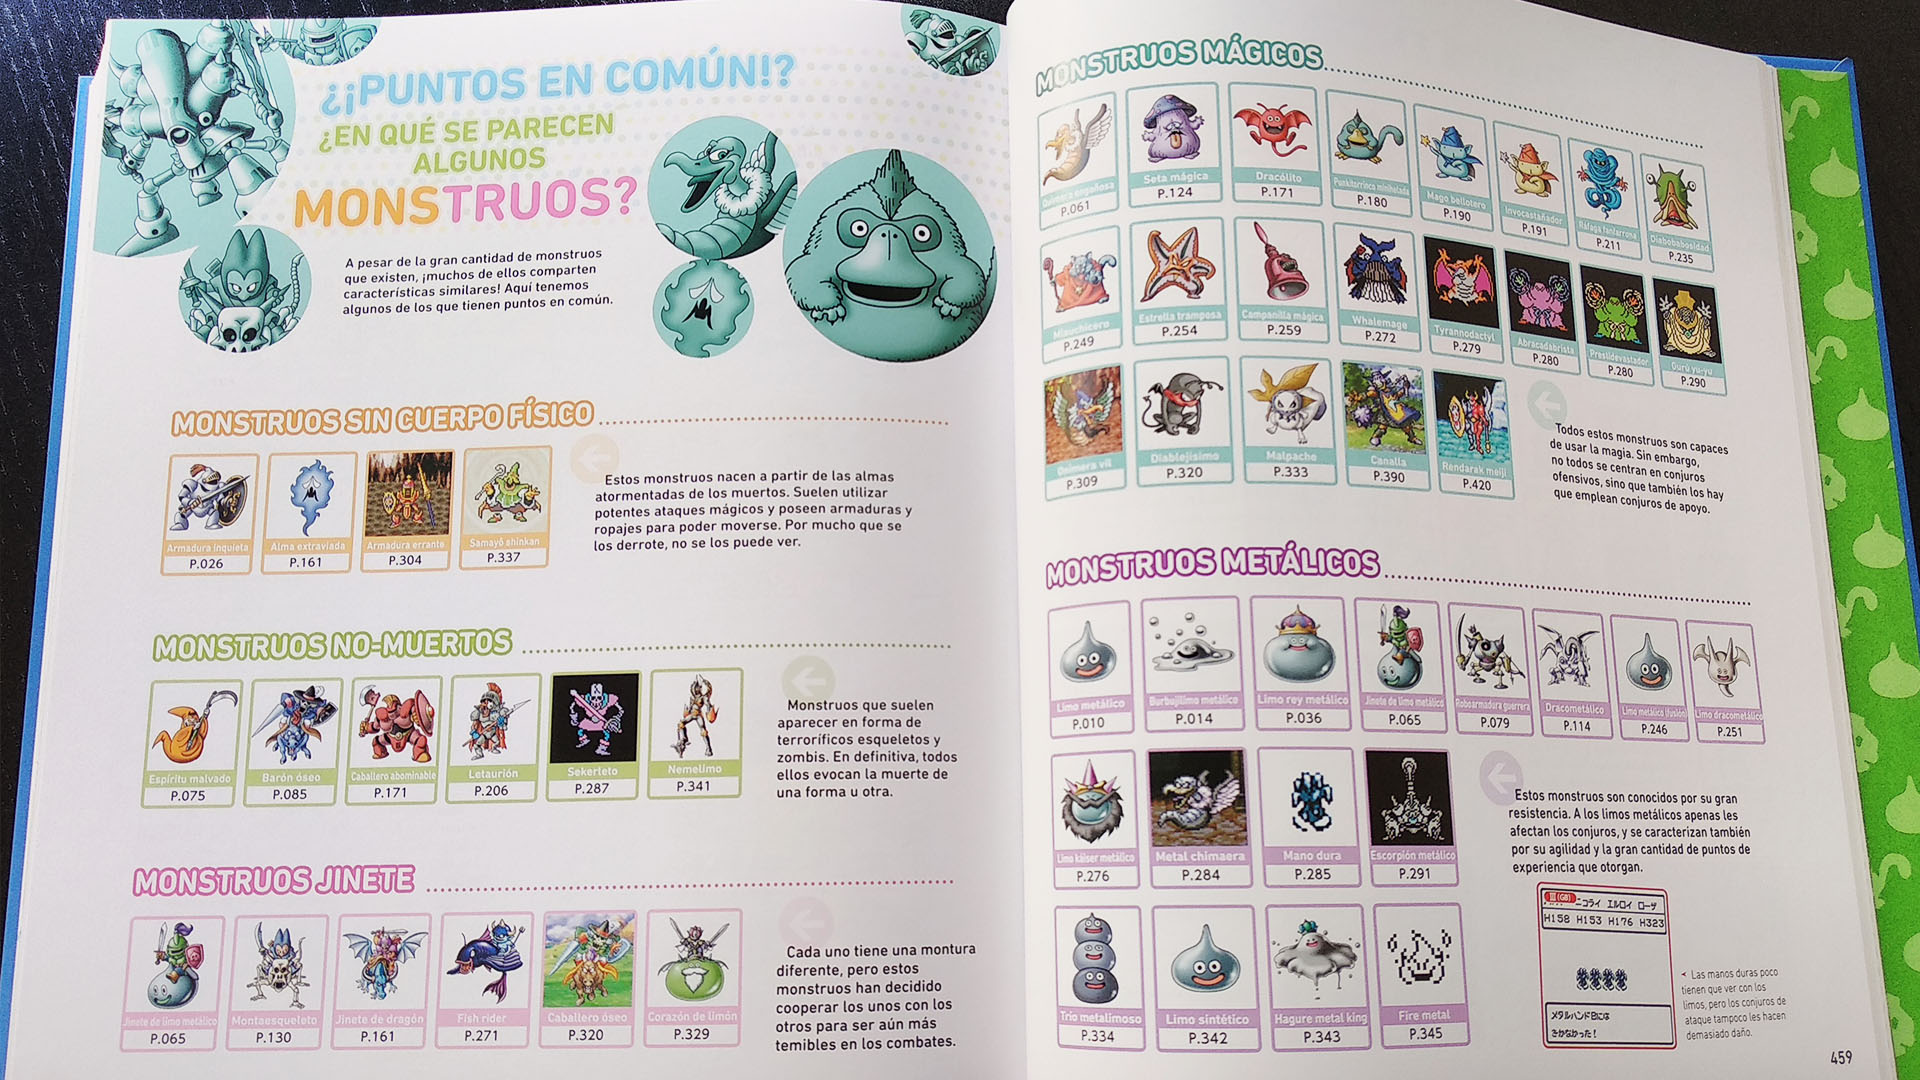 Dragon quest: Enciclopedia de monstruos